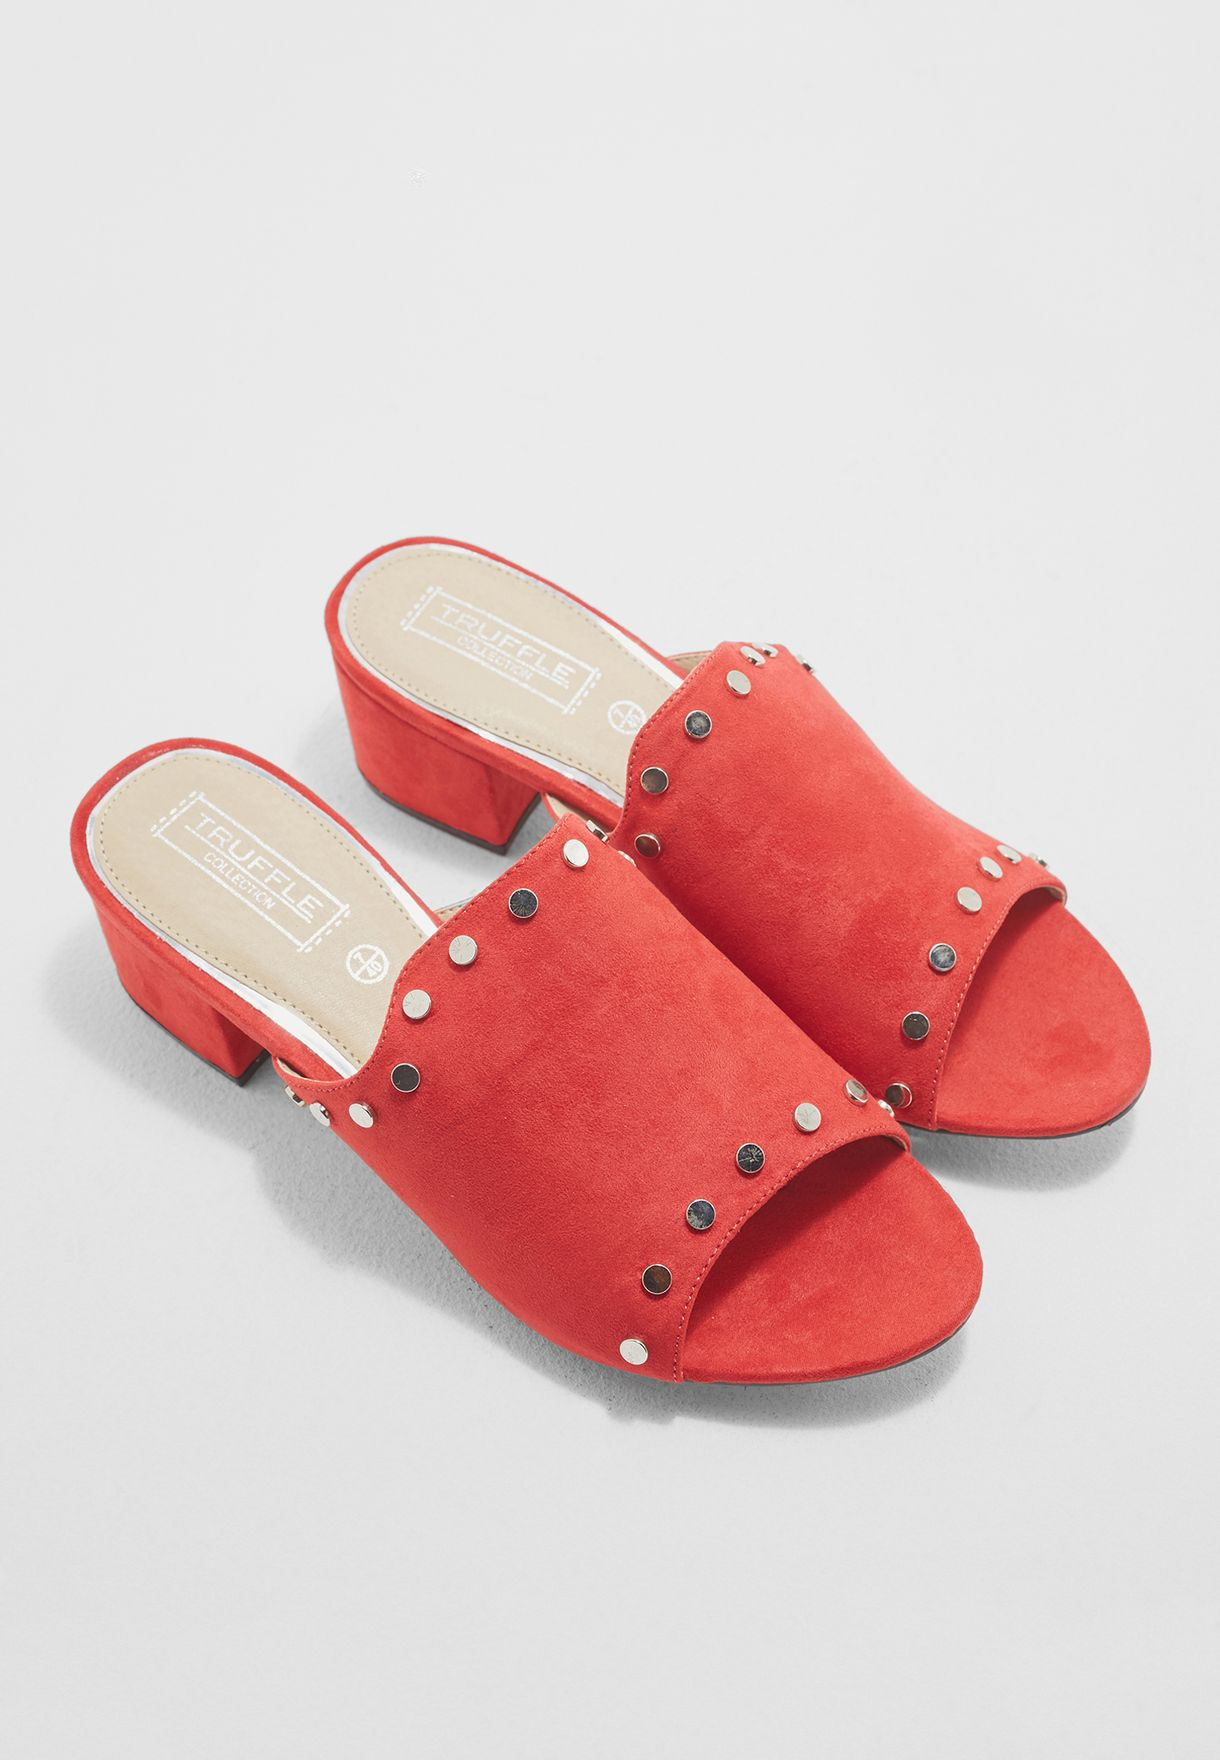 exclusive deals detailing best place Shop Truffle red Mule Sandals ARORA30 for Women in Saudi ...